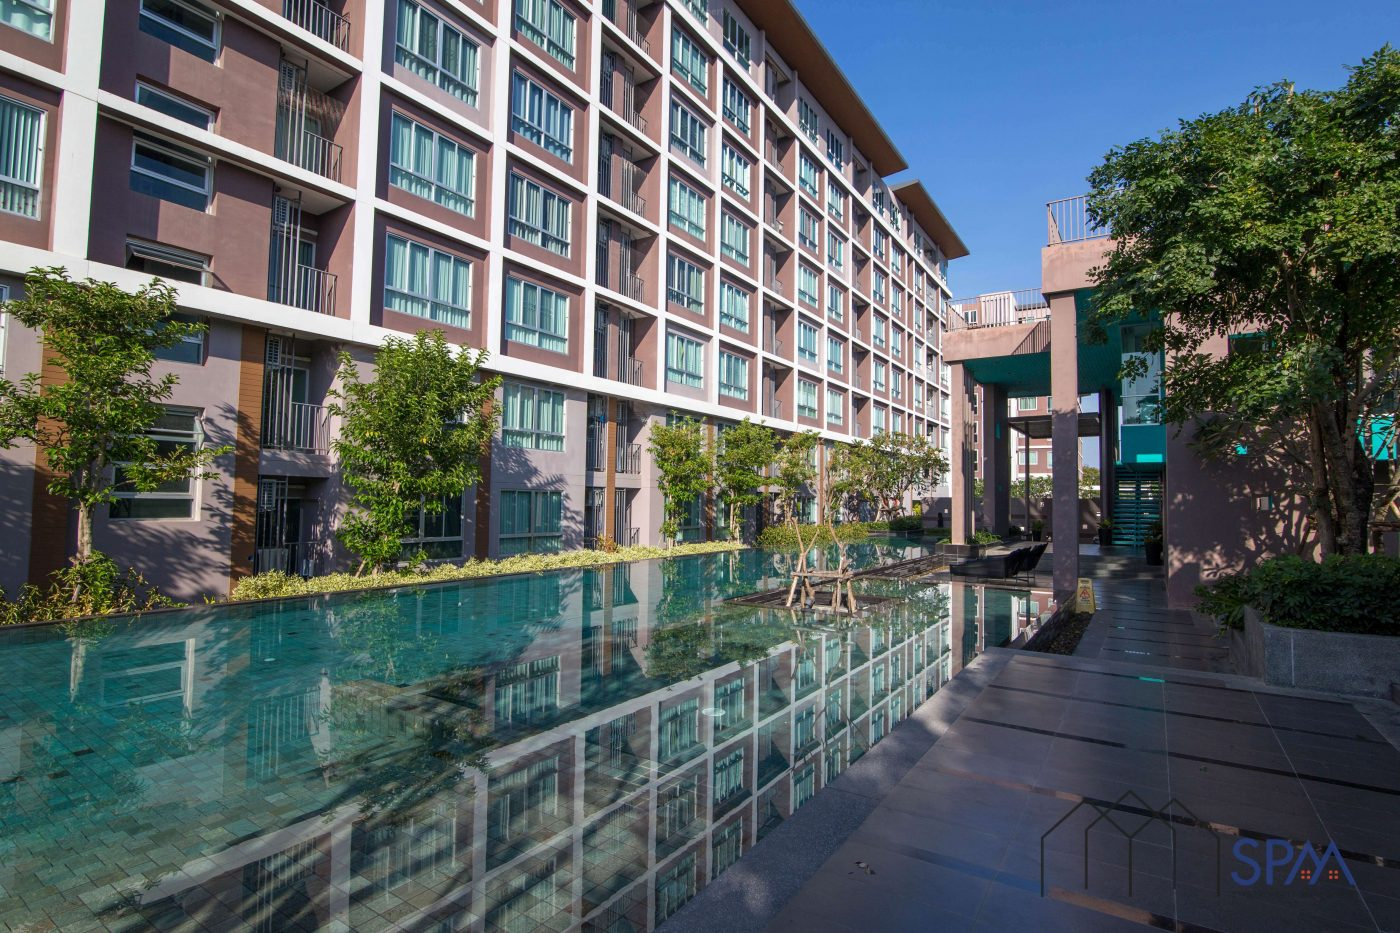 2 Bedroom Condo at Baan Kunkoey for Rent at Hua Hin-Near Blueport Shopping Center